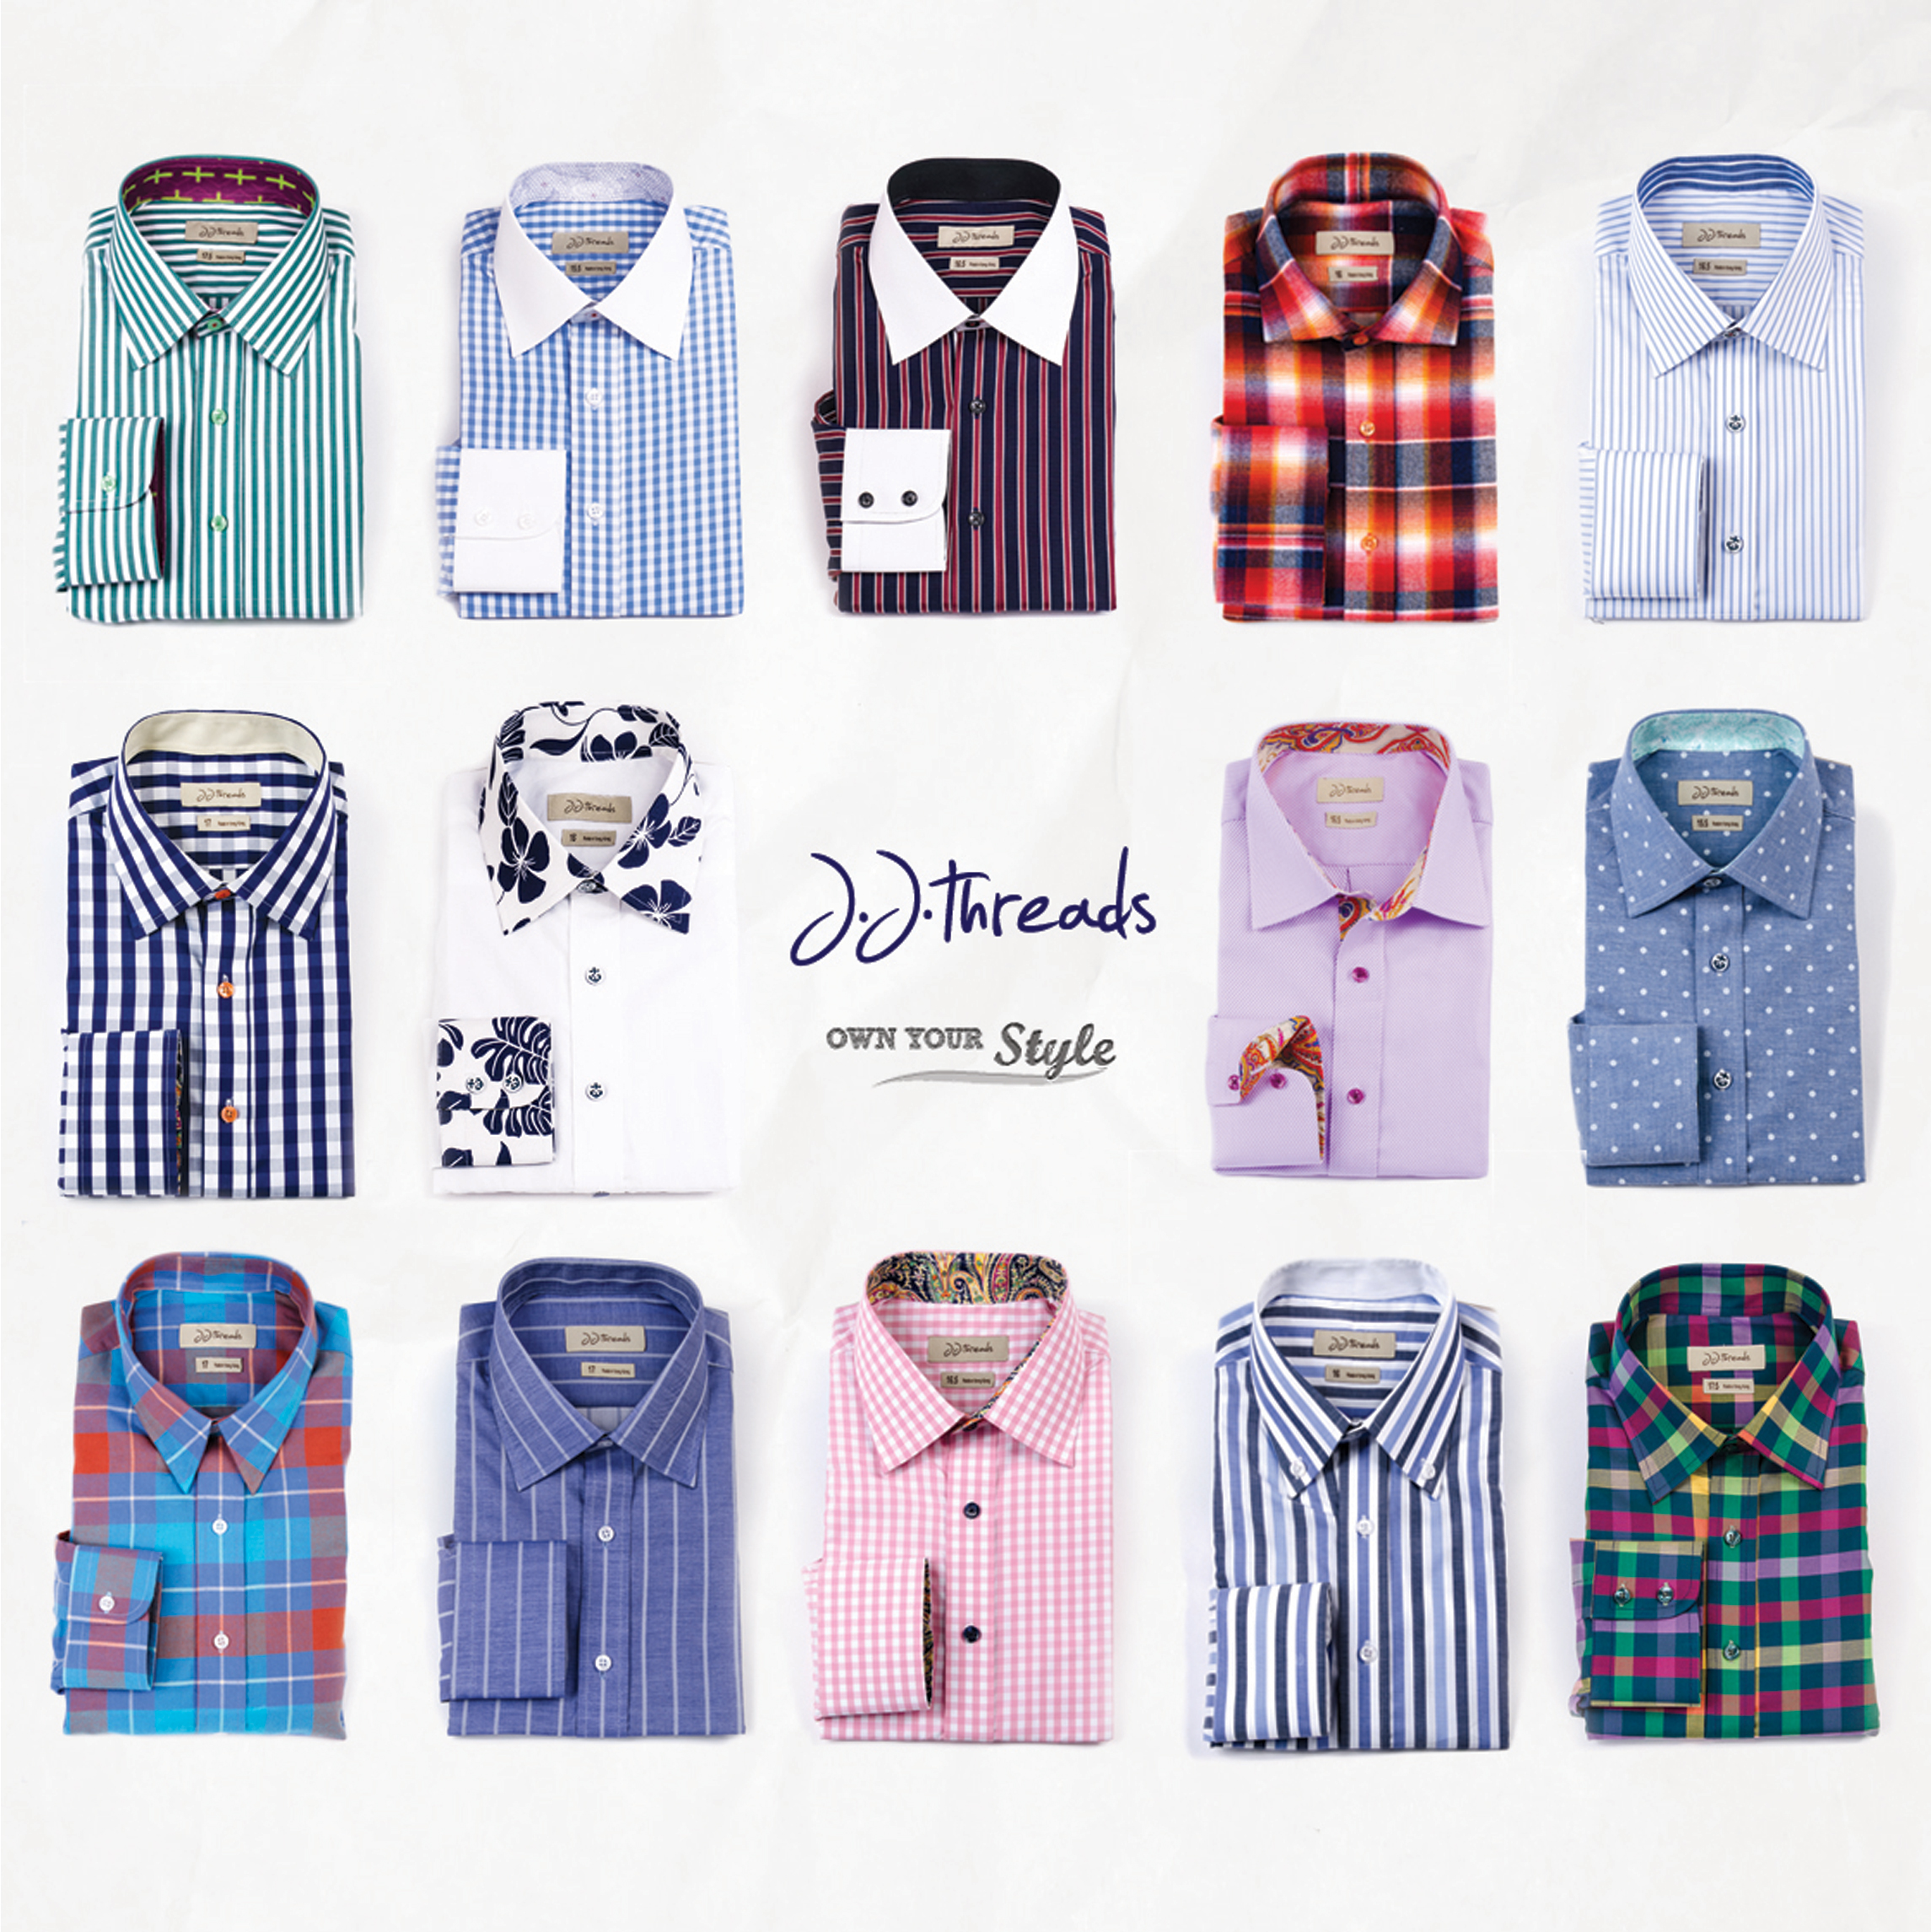 JJ Threads shirts